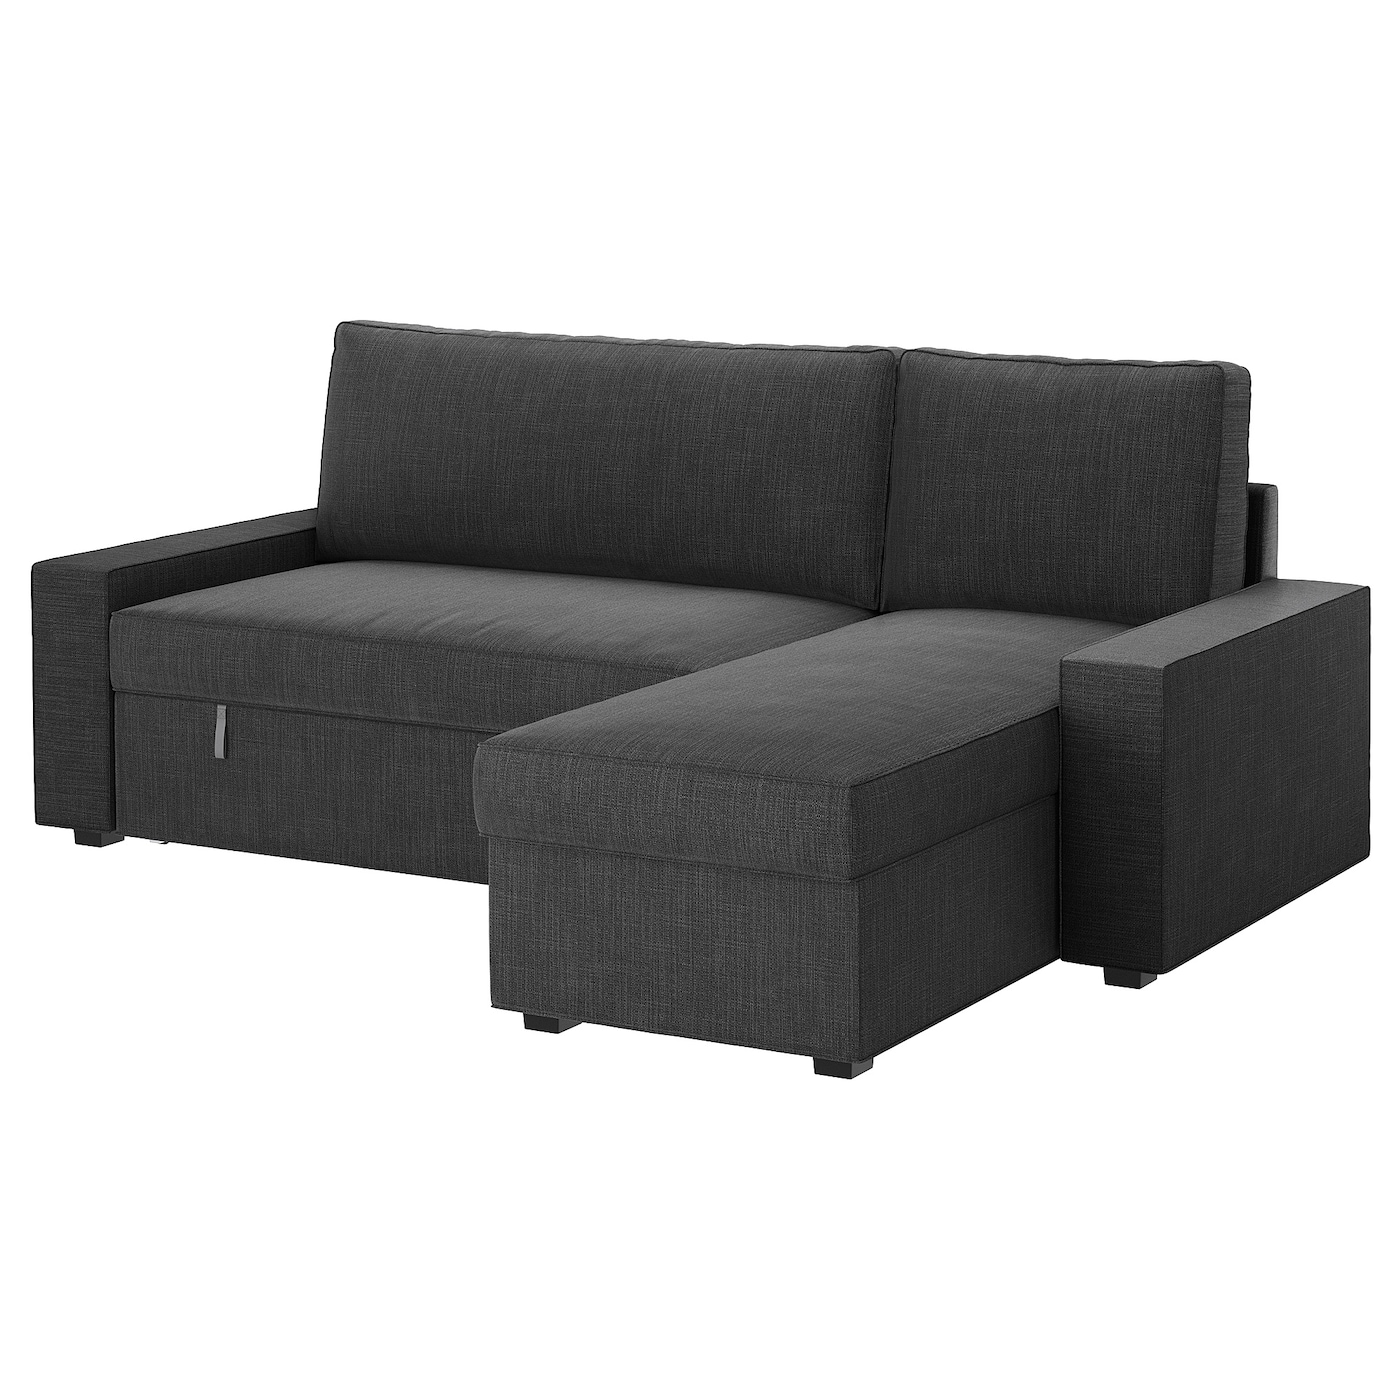 Vilasund sofa bed with chaise longue hillared anthracite for Sofas con chaise longue